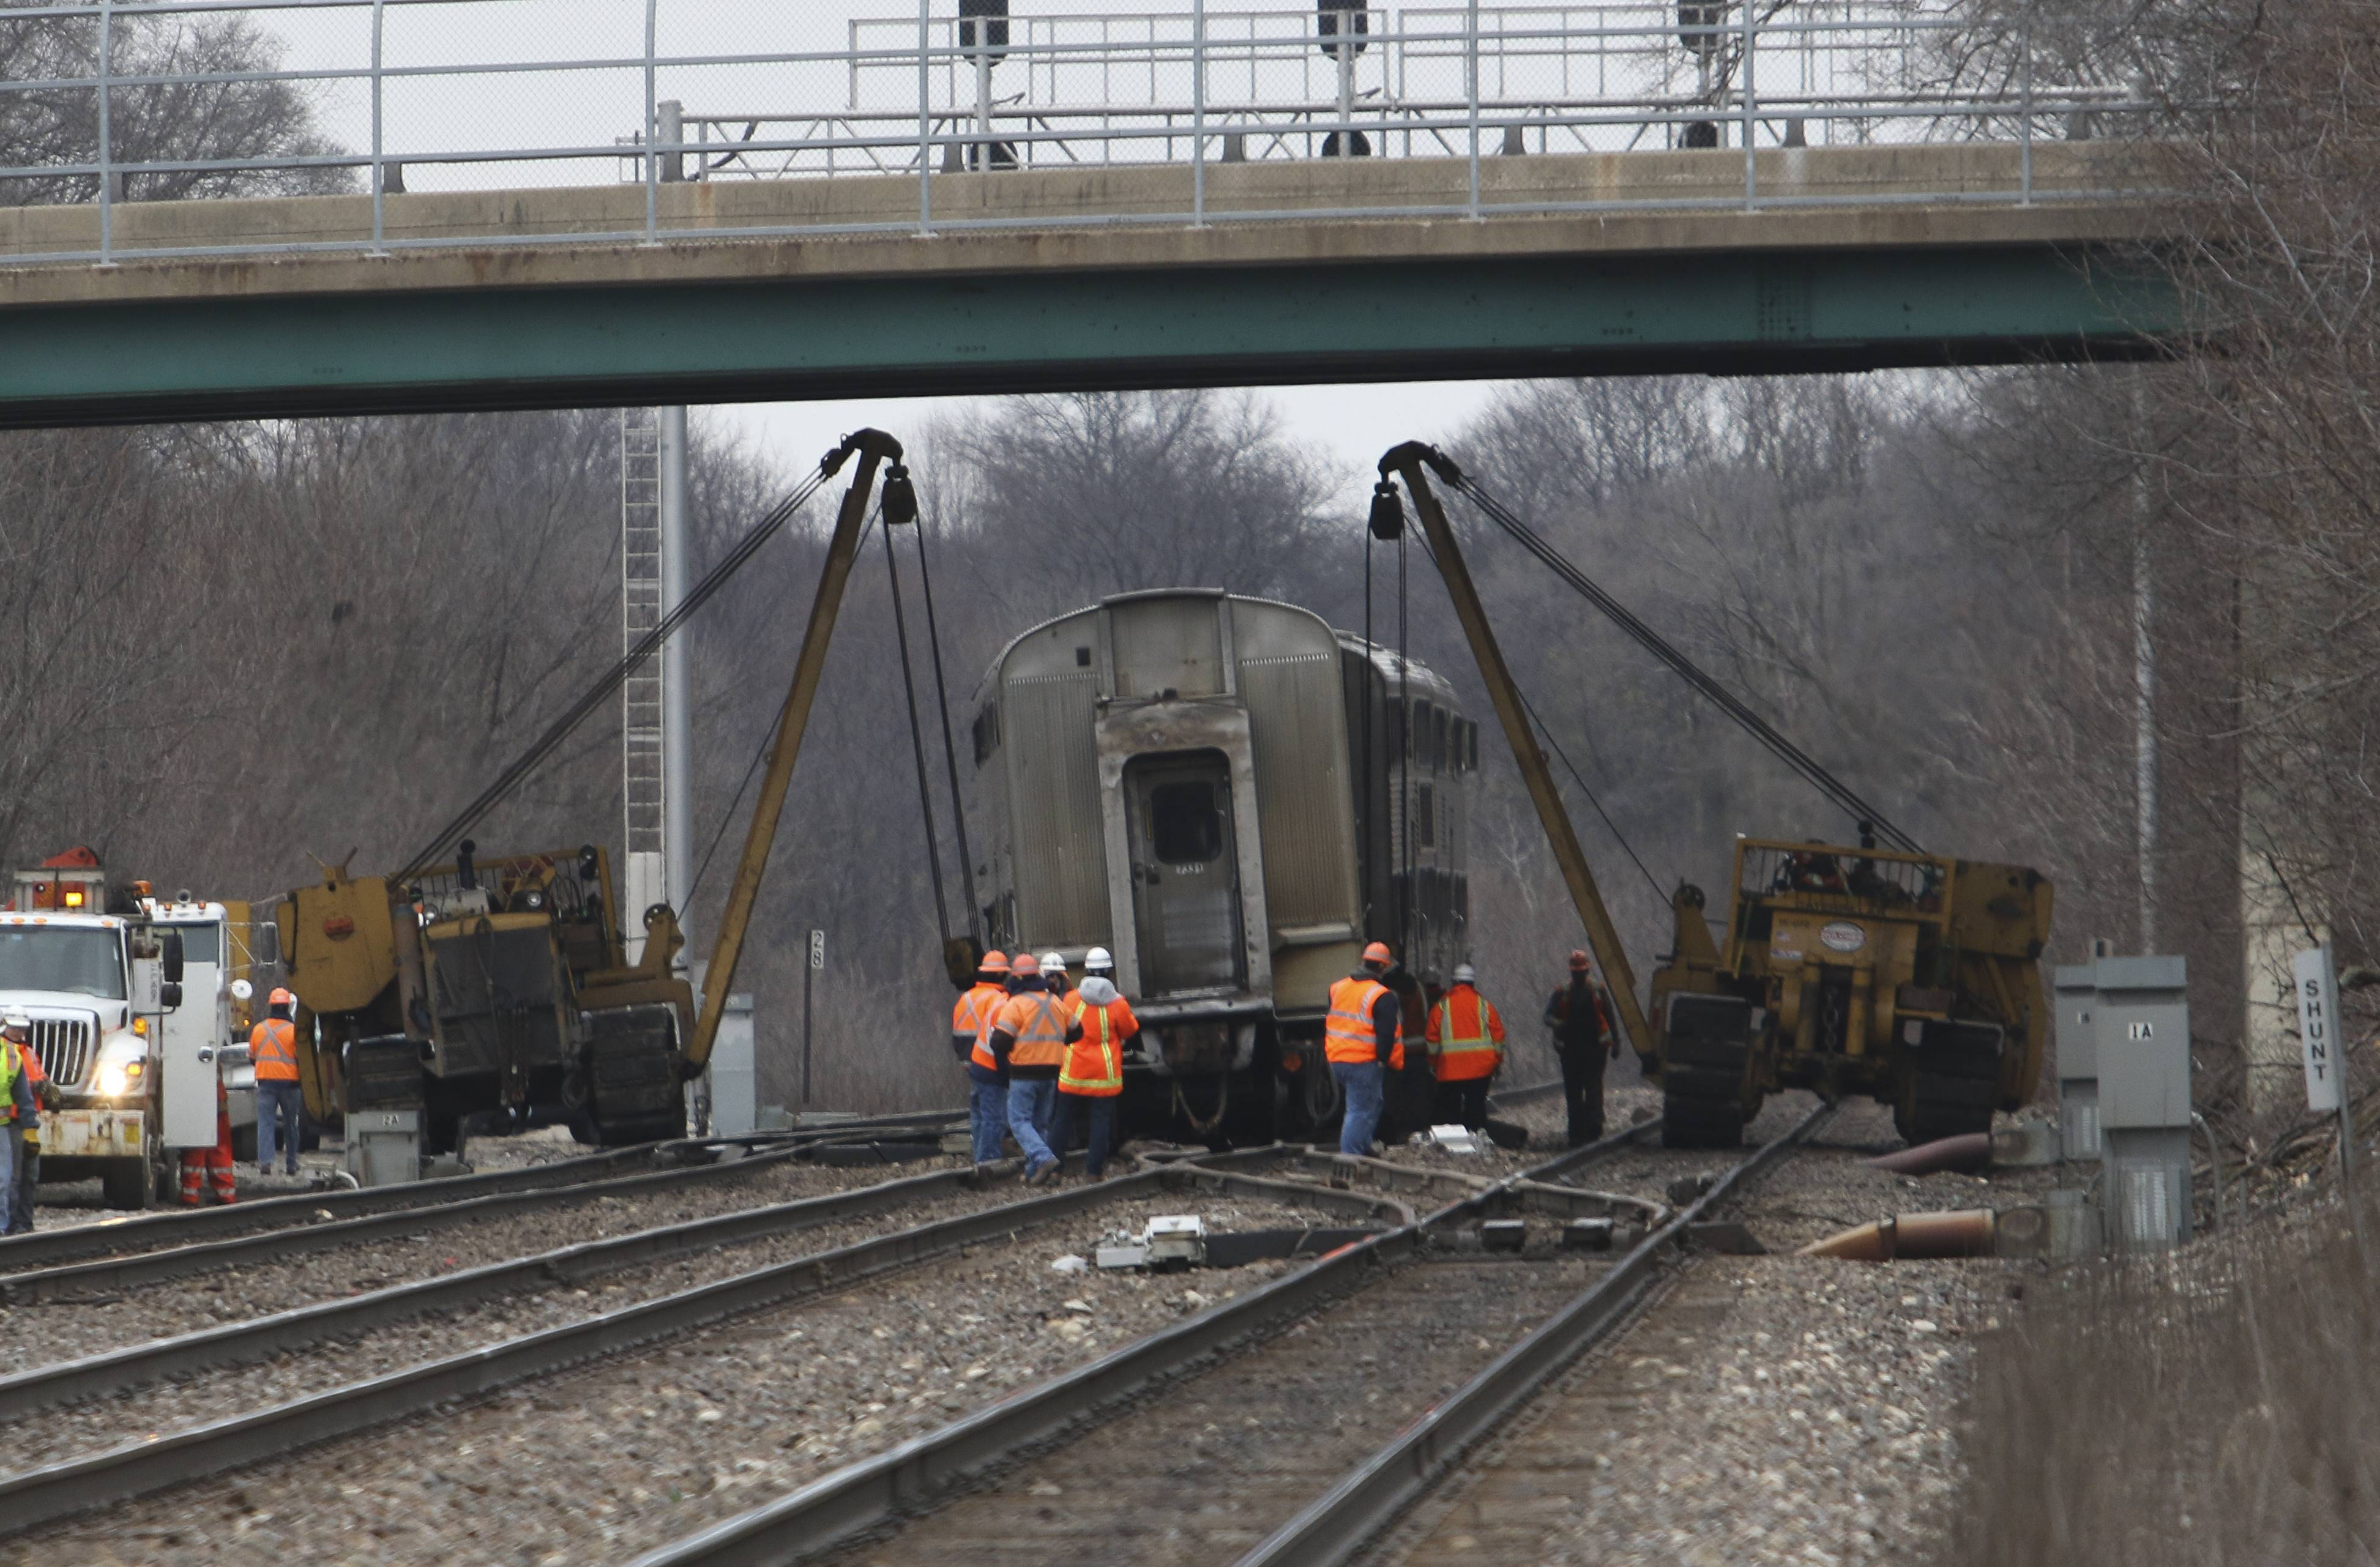 Crews work Monday morning to remove a Metra train that derailed just east of the downtown Naperville train station.